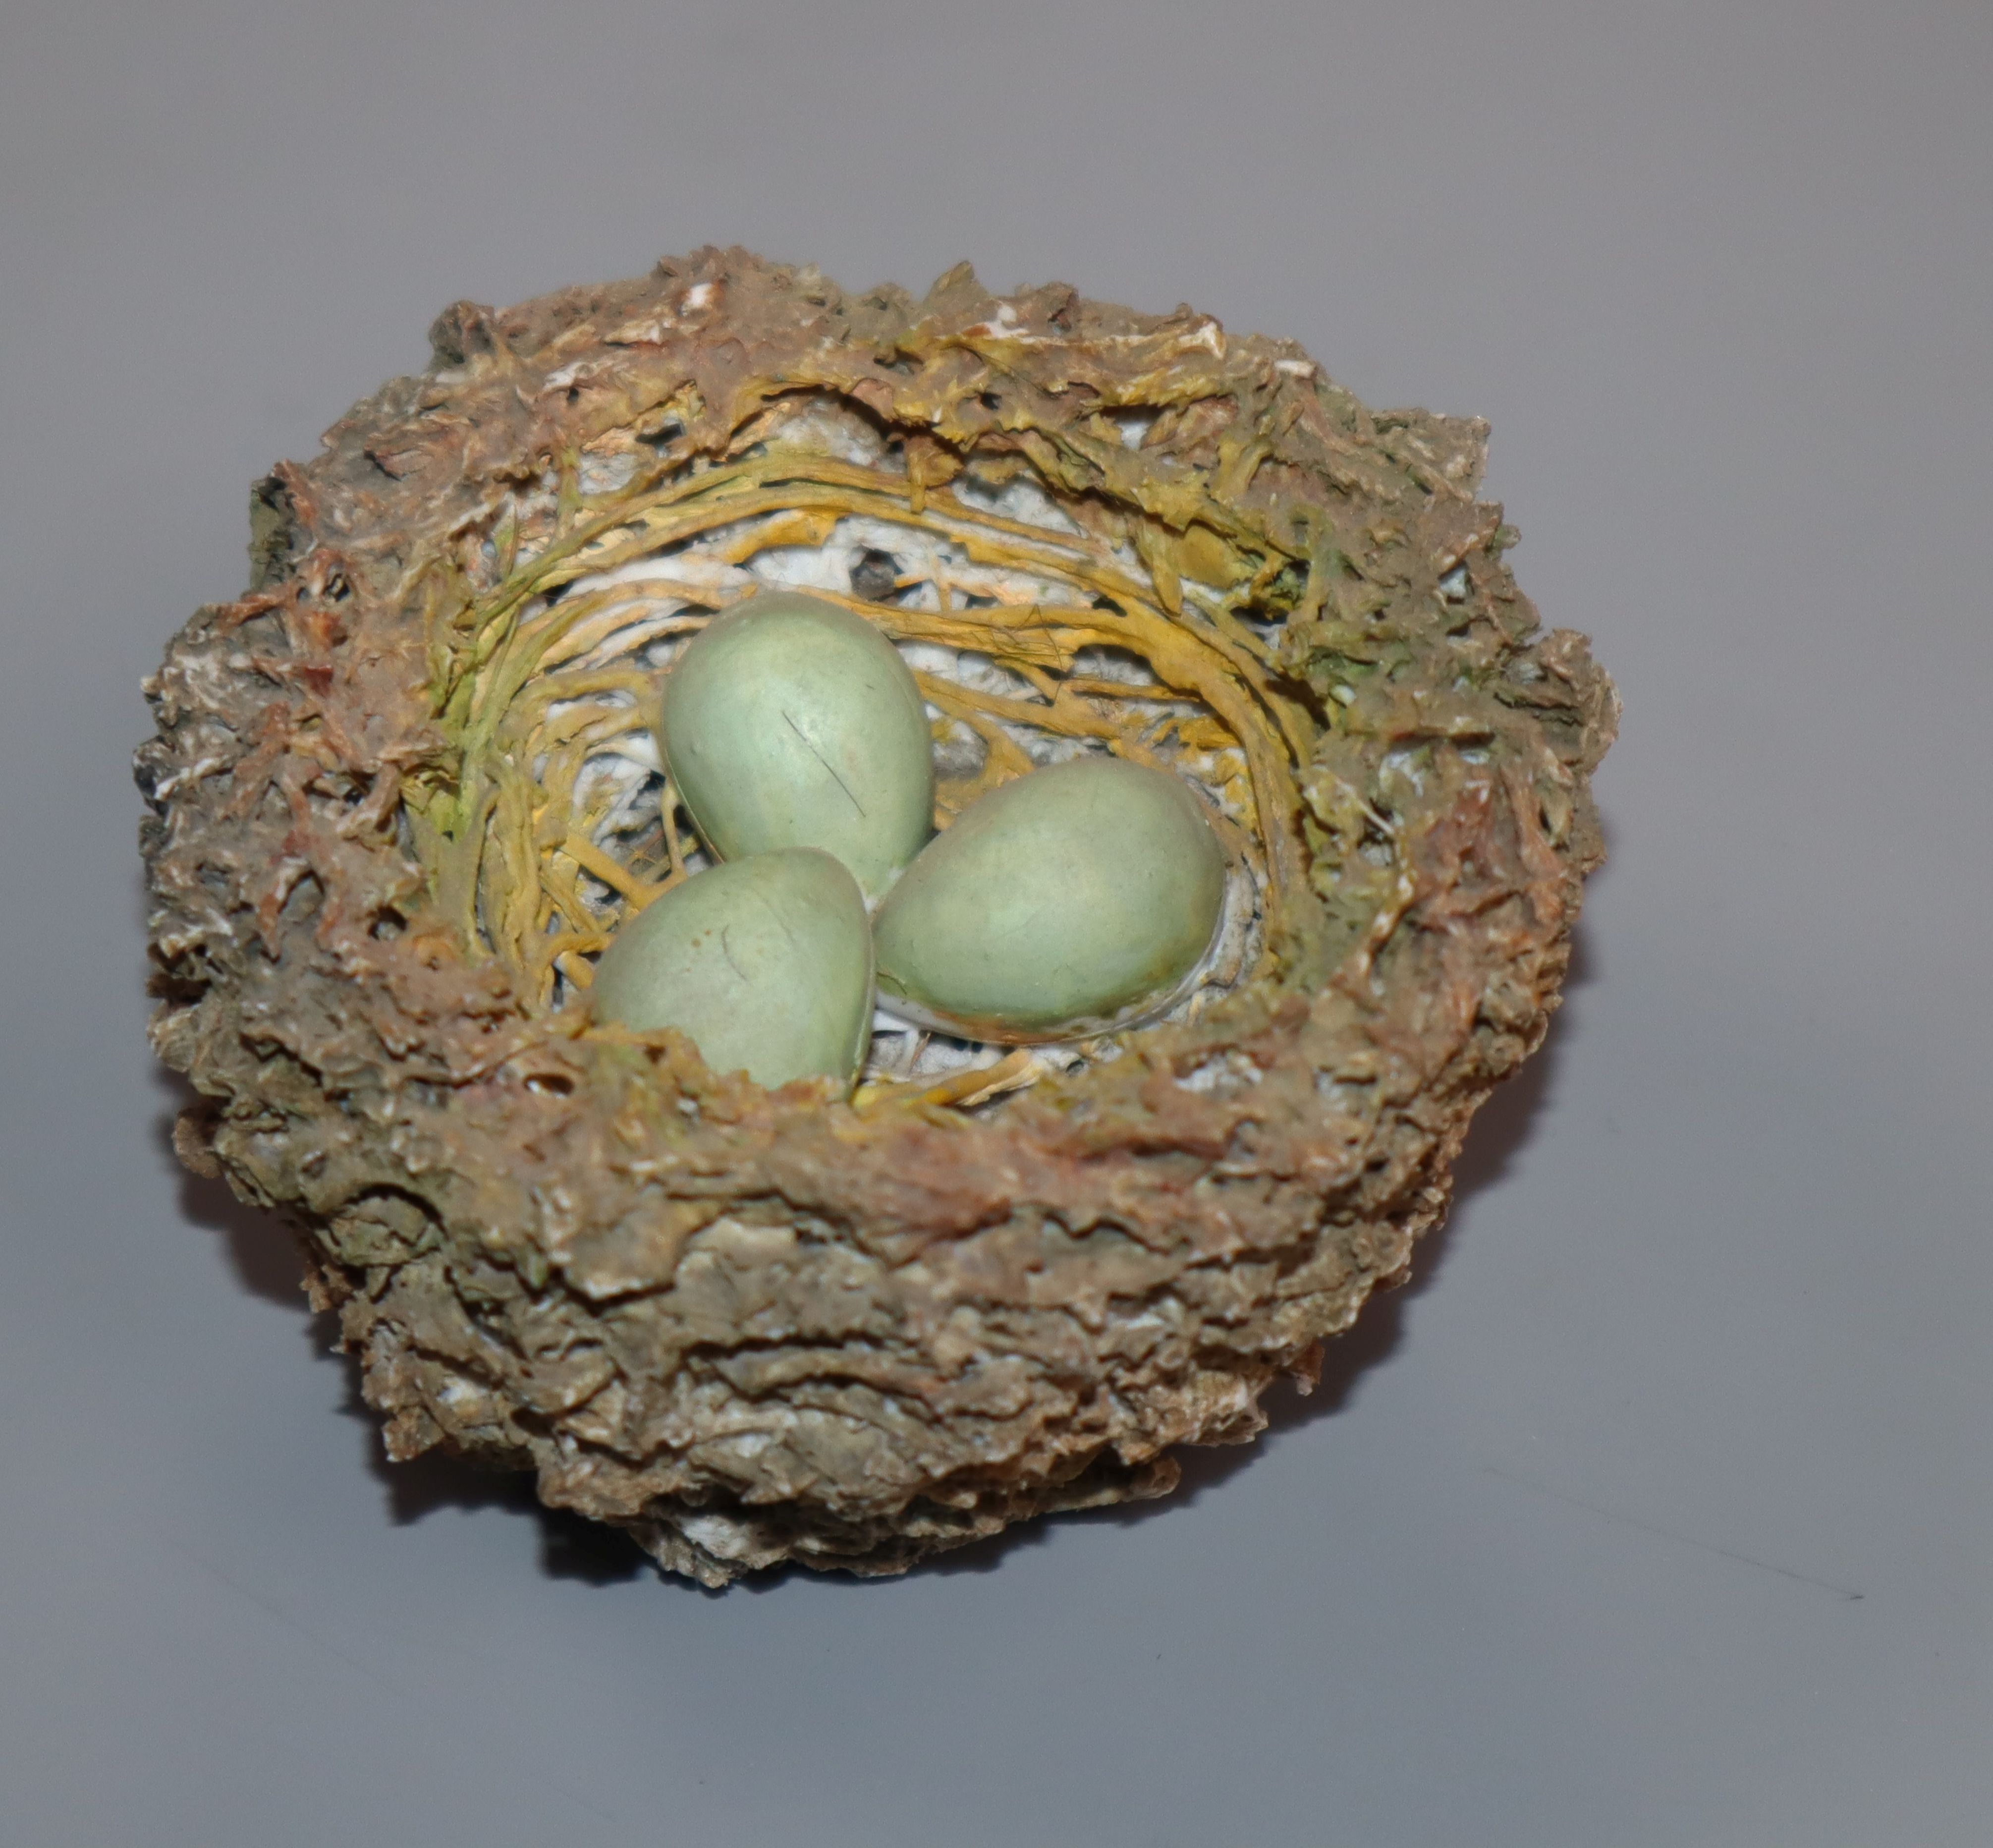 Lot 275 - A Bristol porcelain model of a bird's nest, modelled by Edward Raby for Pountney & Co, in moss